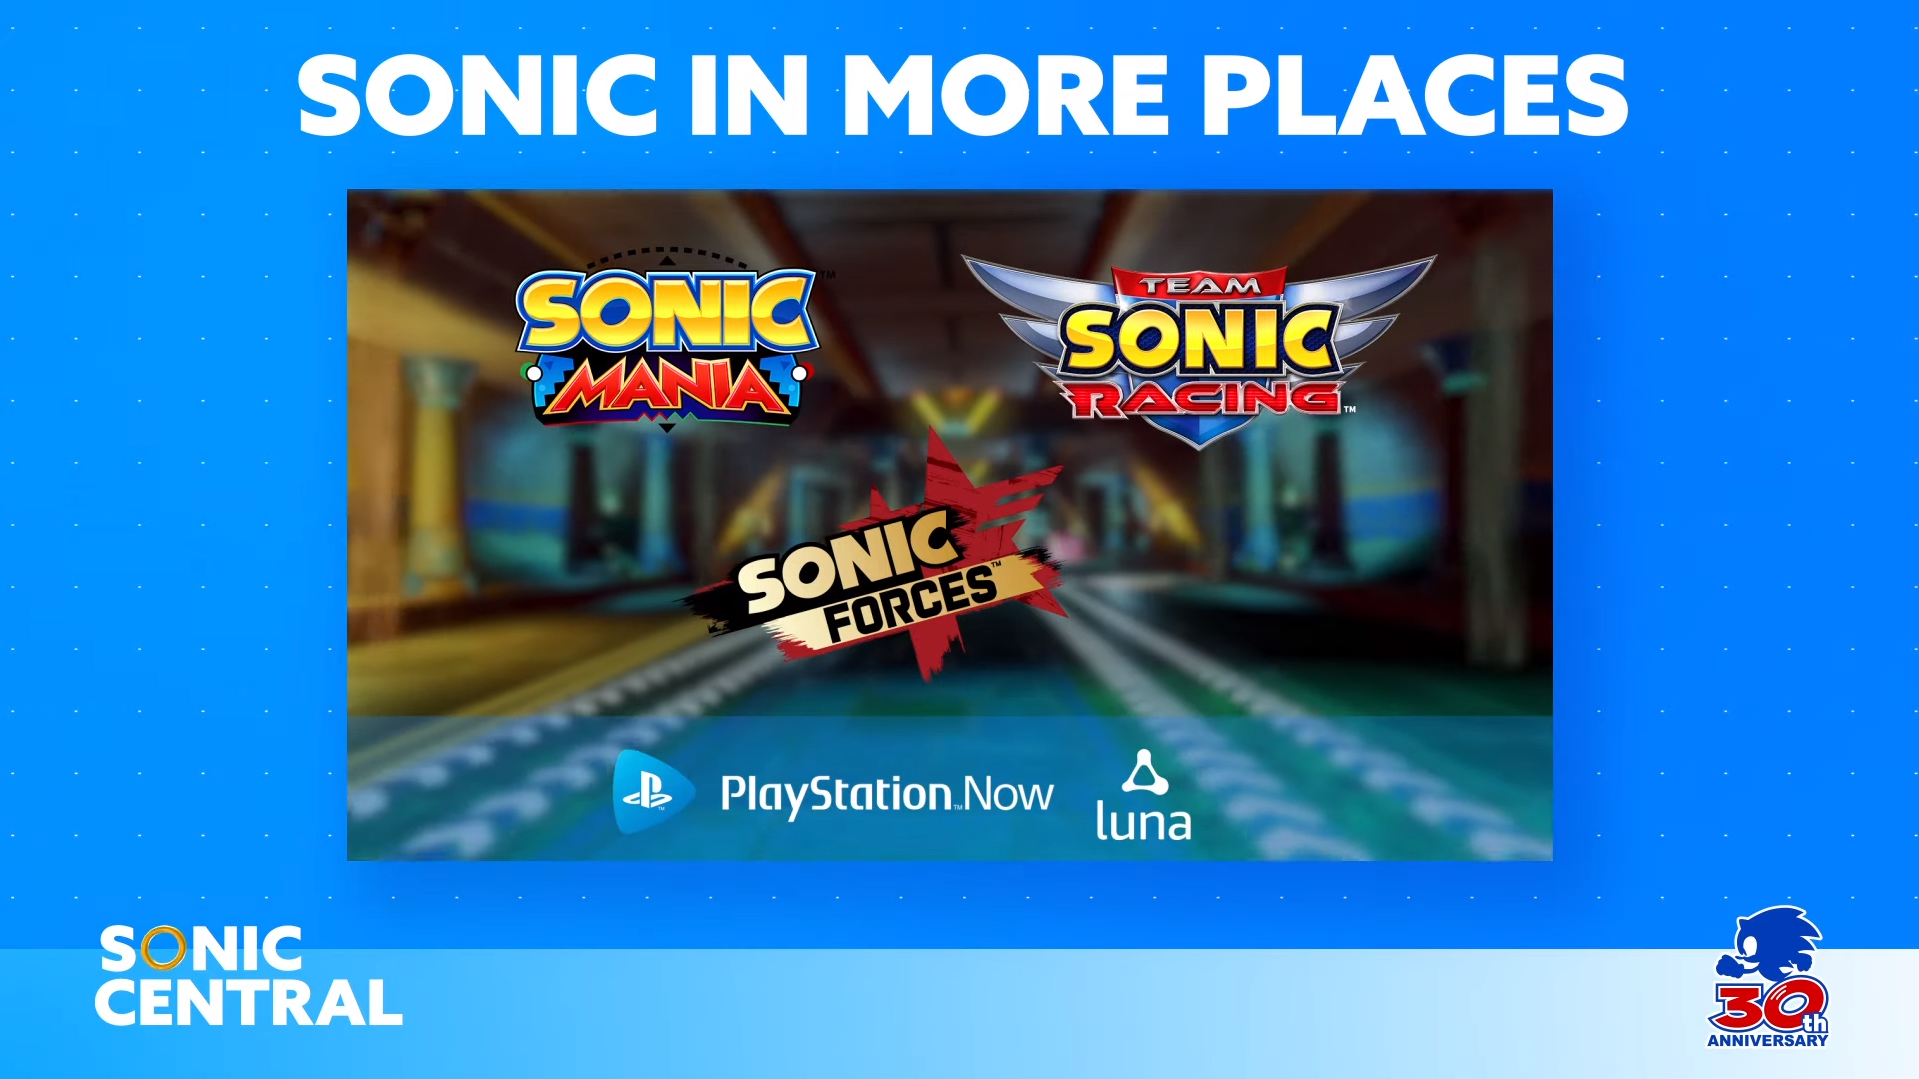 Sonic Central PlayStation